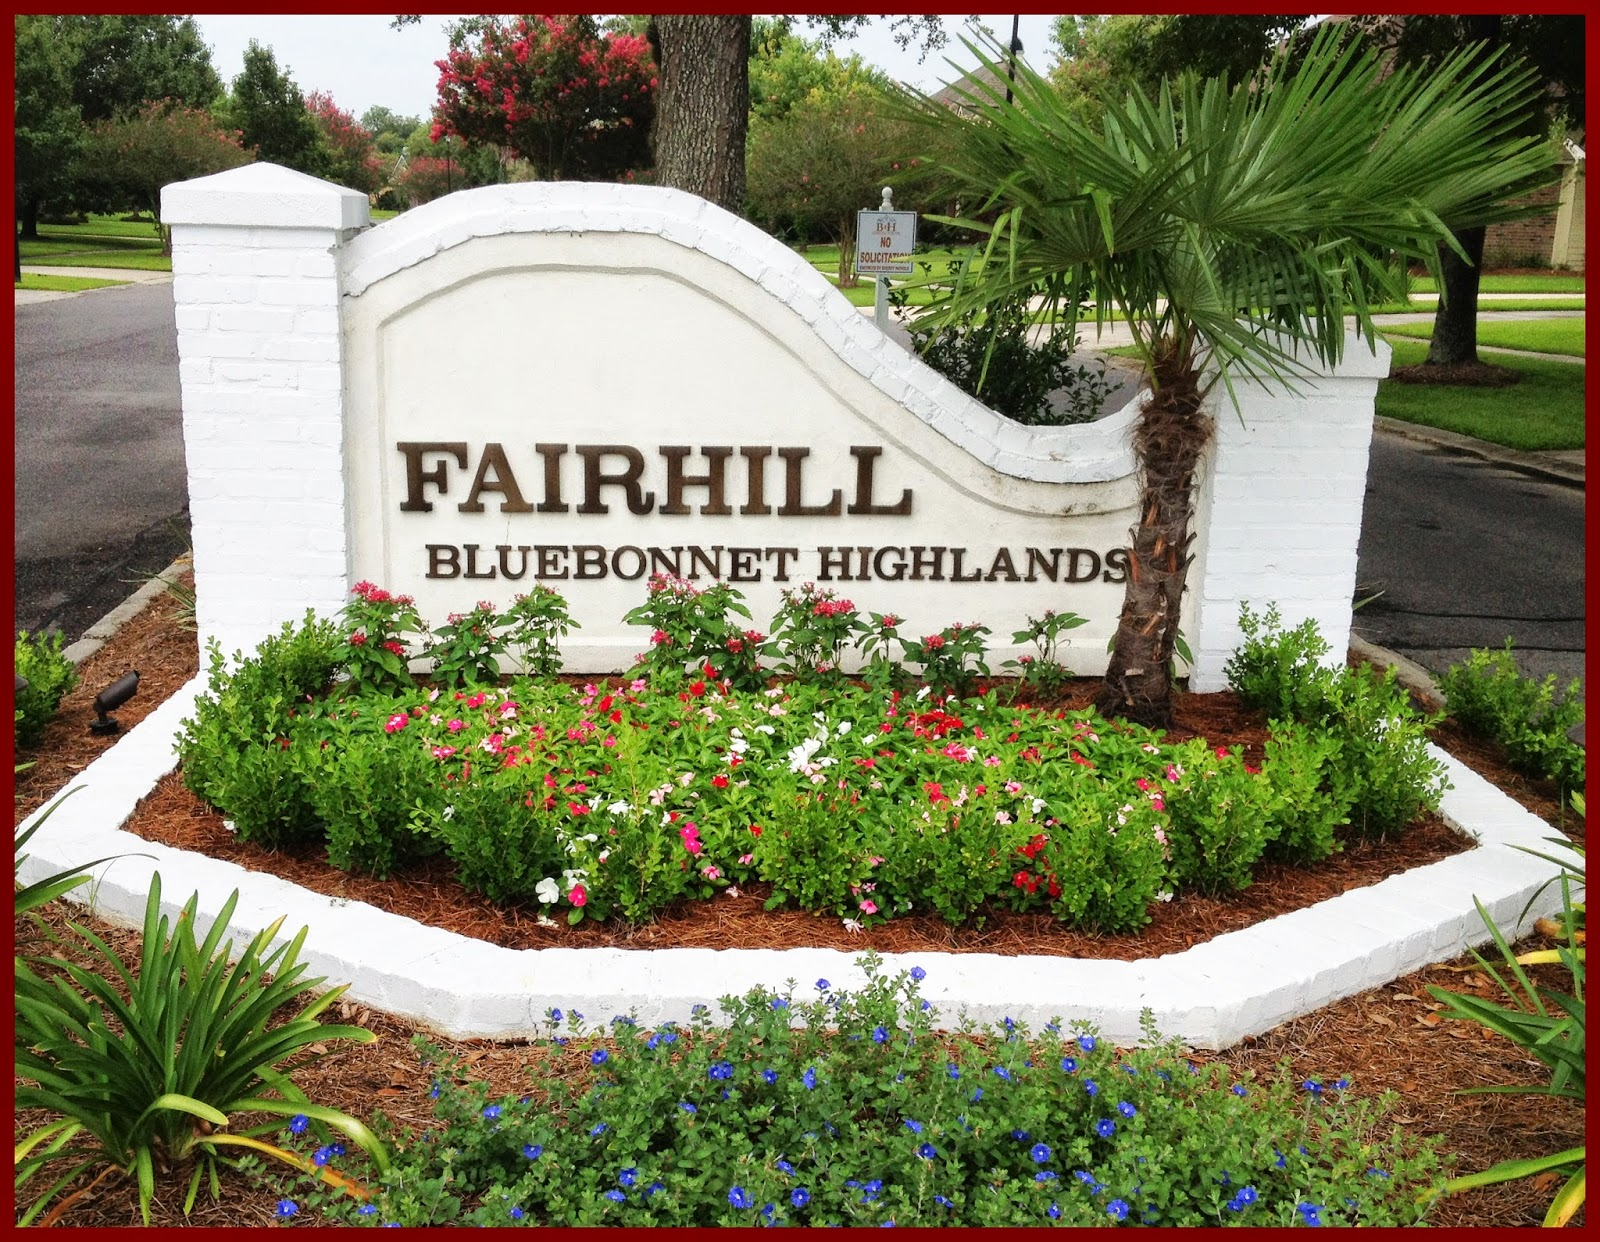 Louisiana homes and land homes in fairhill at bluebonnet highlands in baton rouge la for Homes for sale in baton rouge with swimming pools